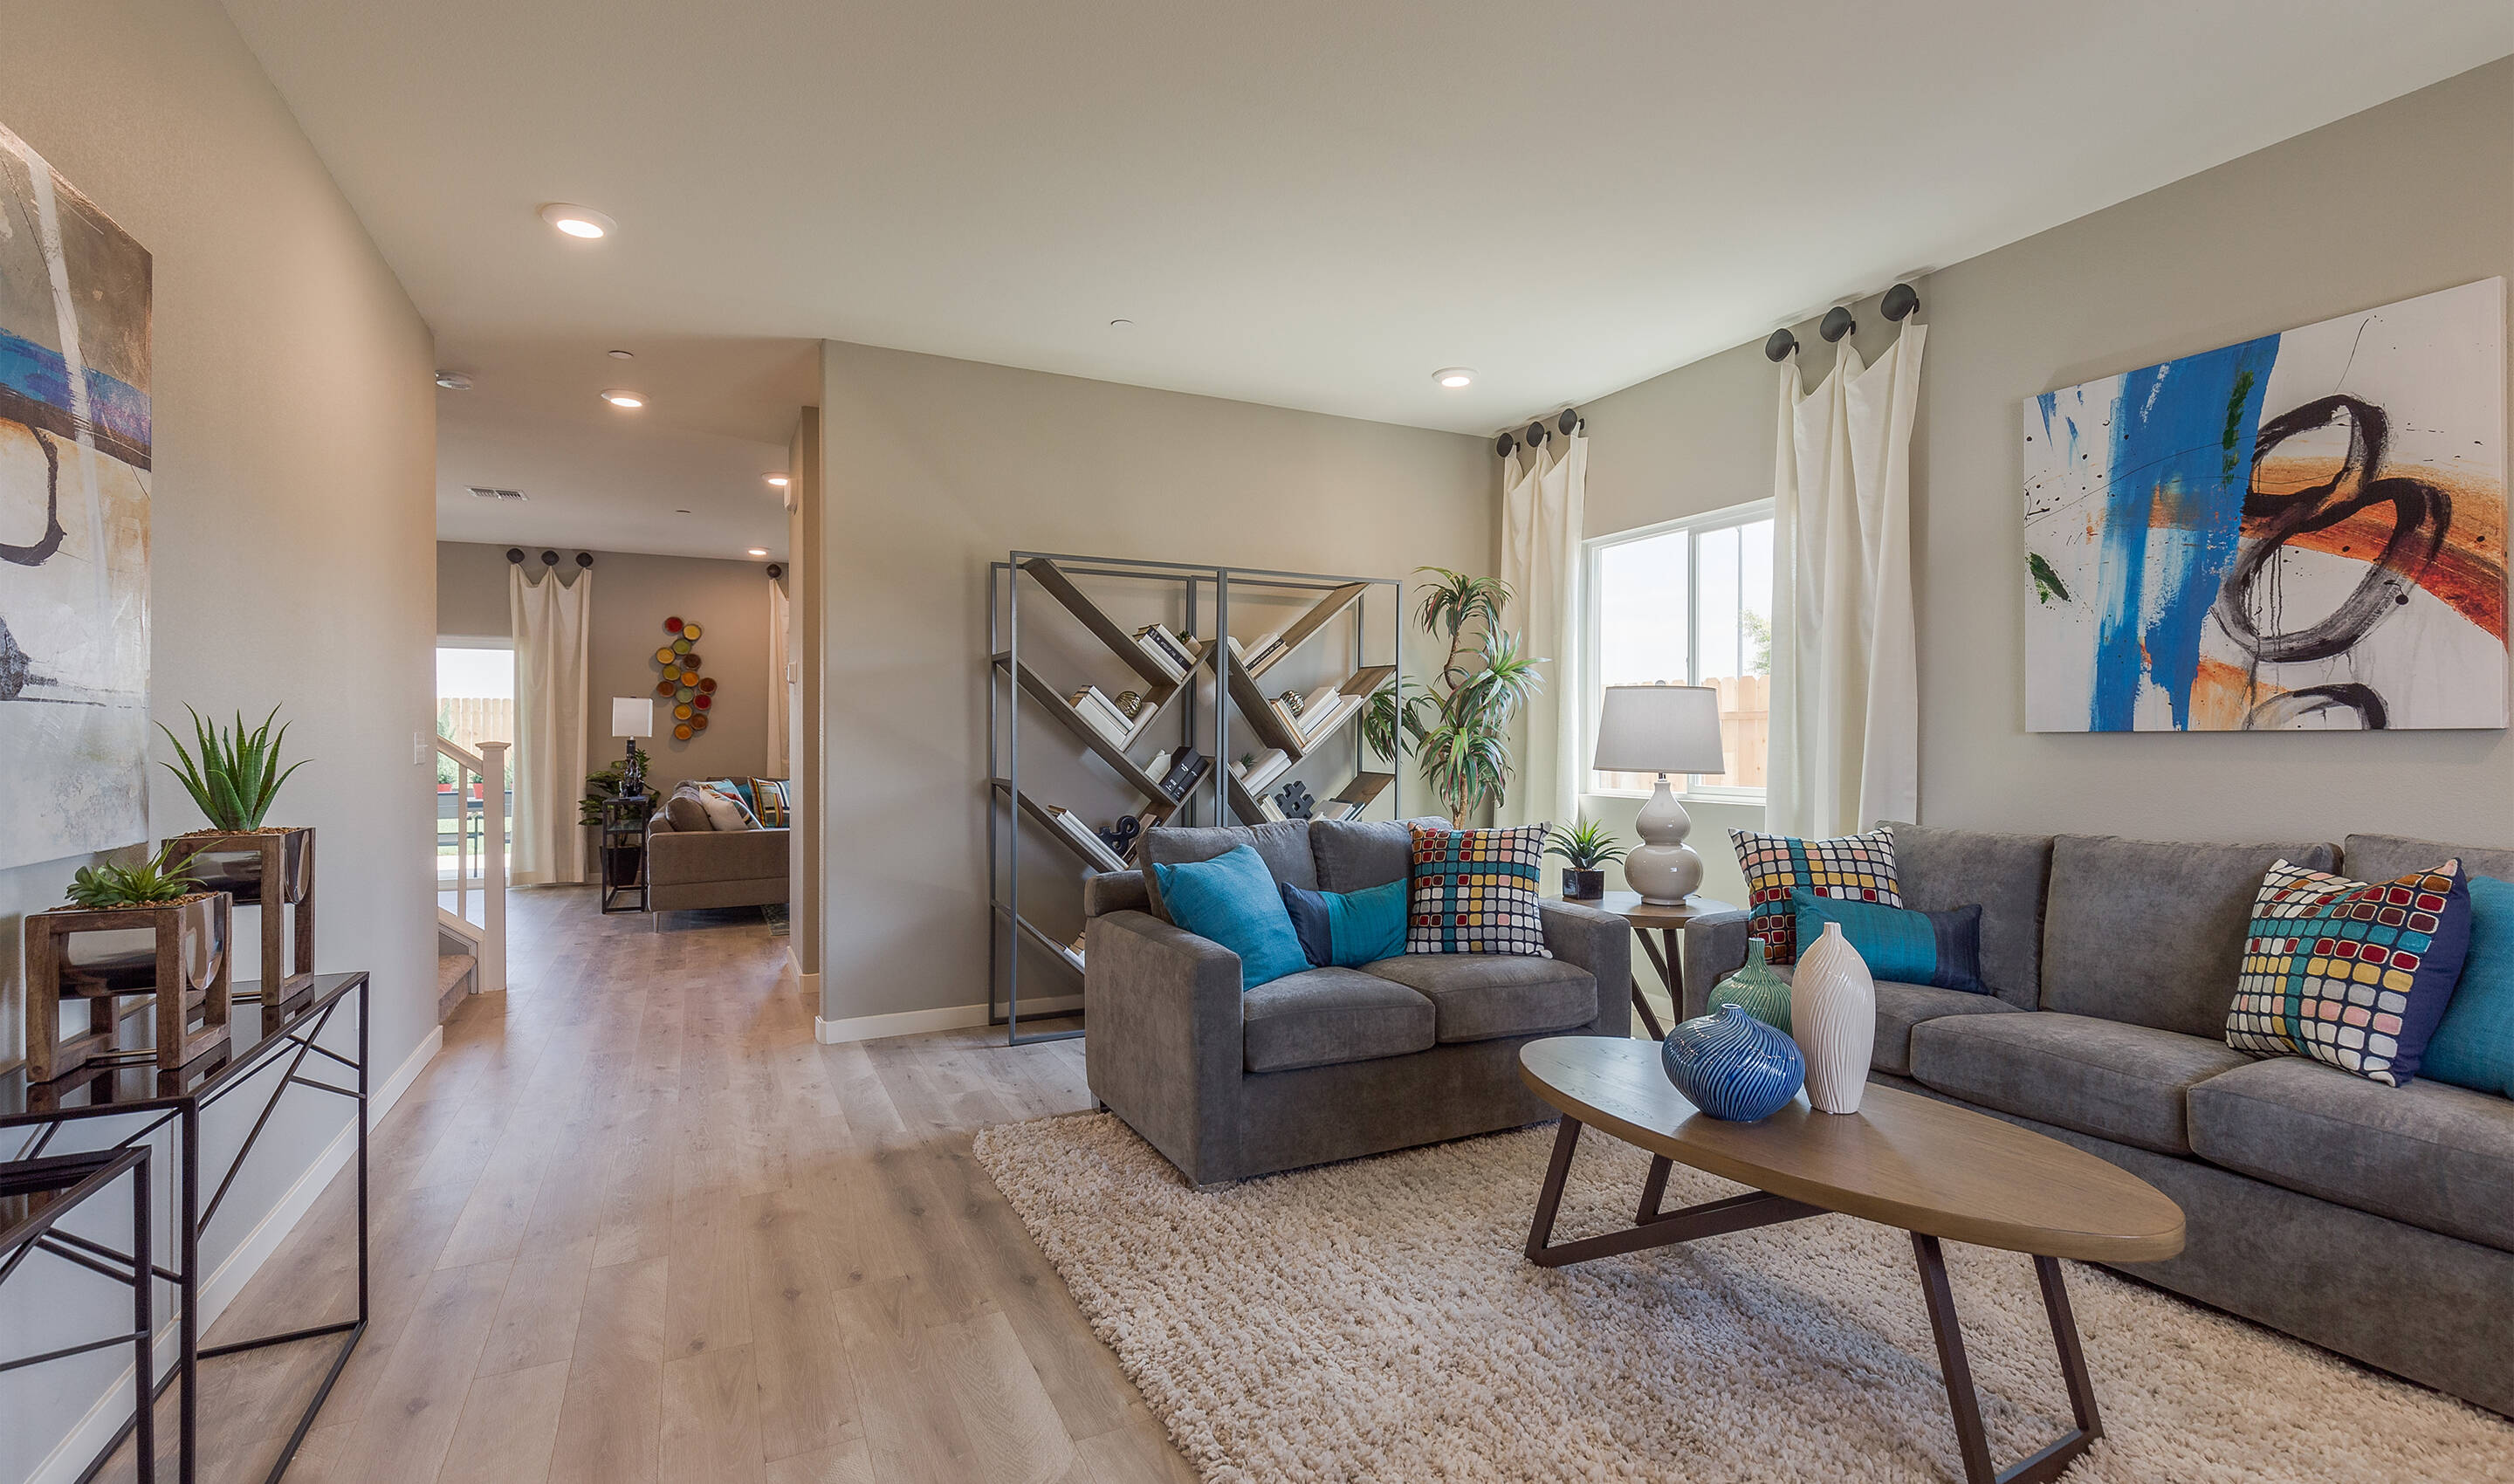 khov_sacramento_aspire at sierra vista_primrose_living room 2